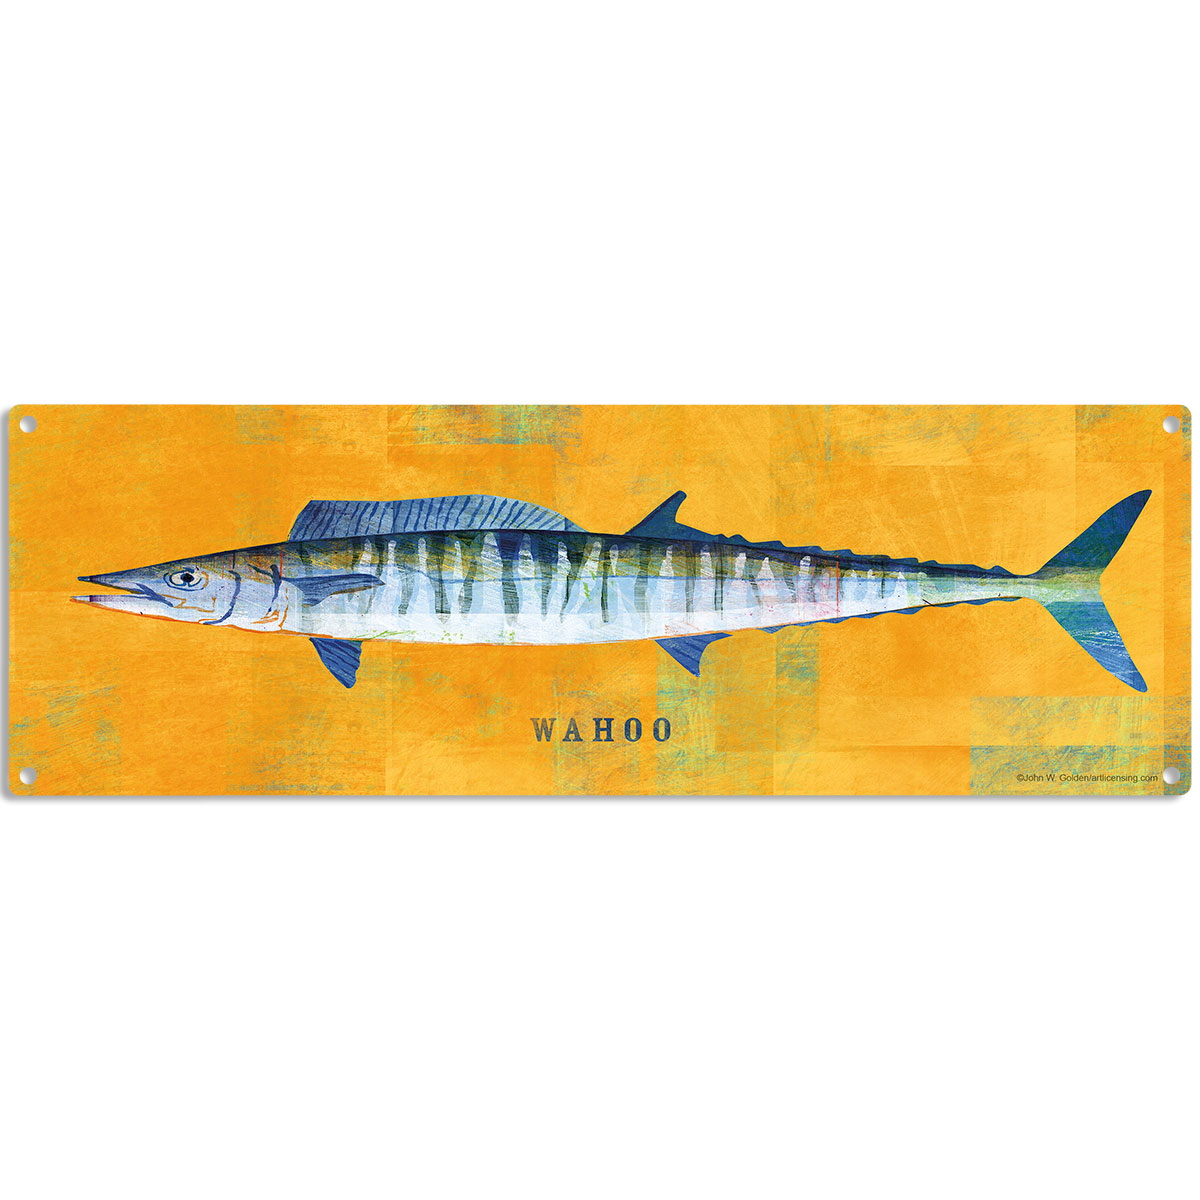 Wahoo Saltwater Fish Art Sign Vintage Style Fishing Decoration 18 x ...